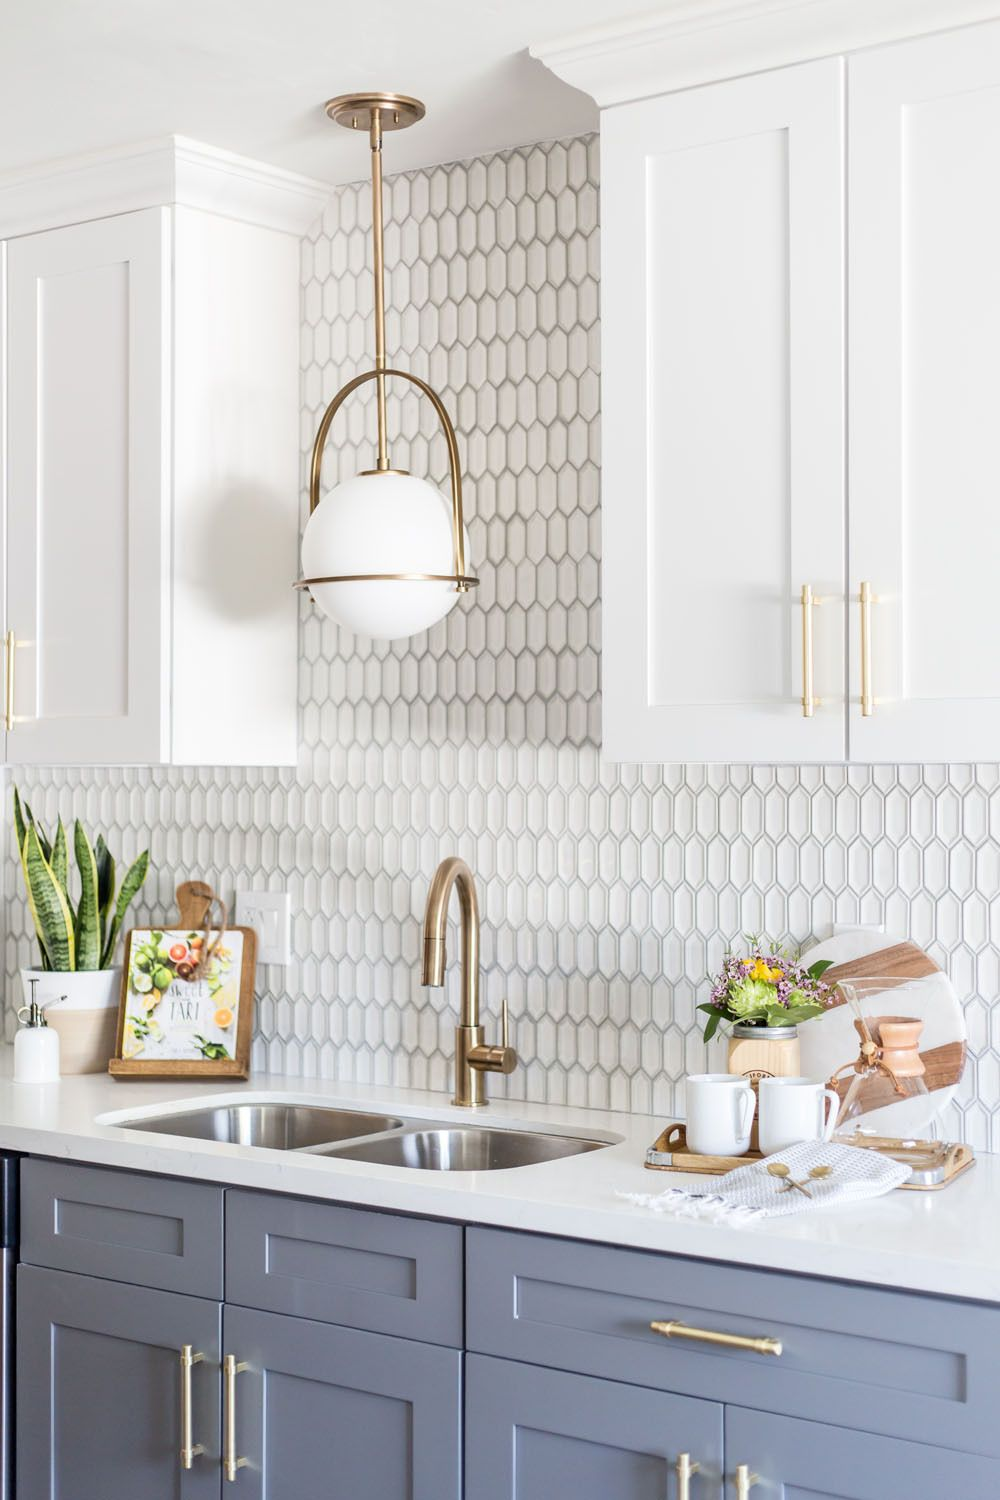 Ruemag Old Meets New In This Brilliant California Kitchen